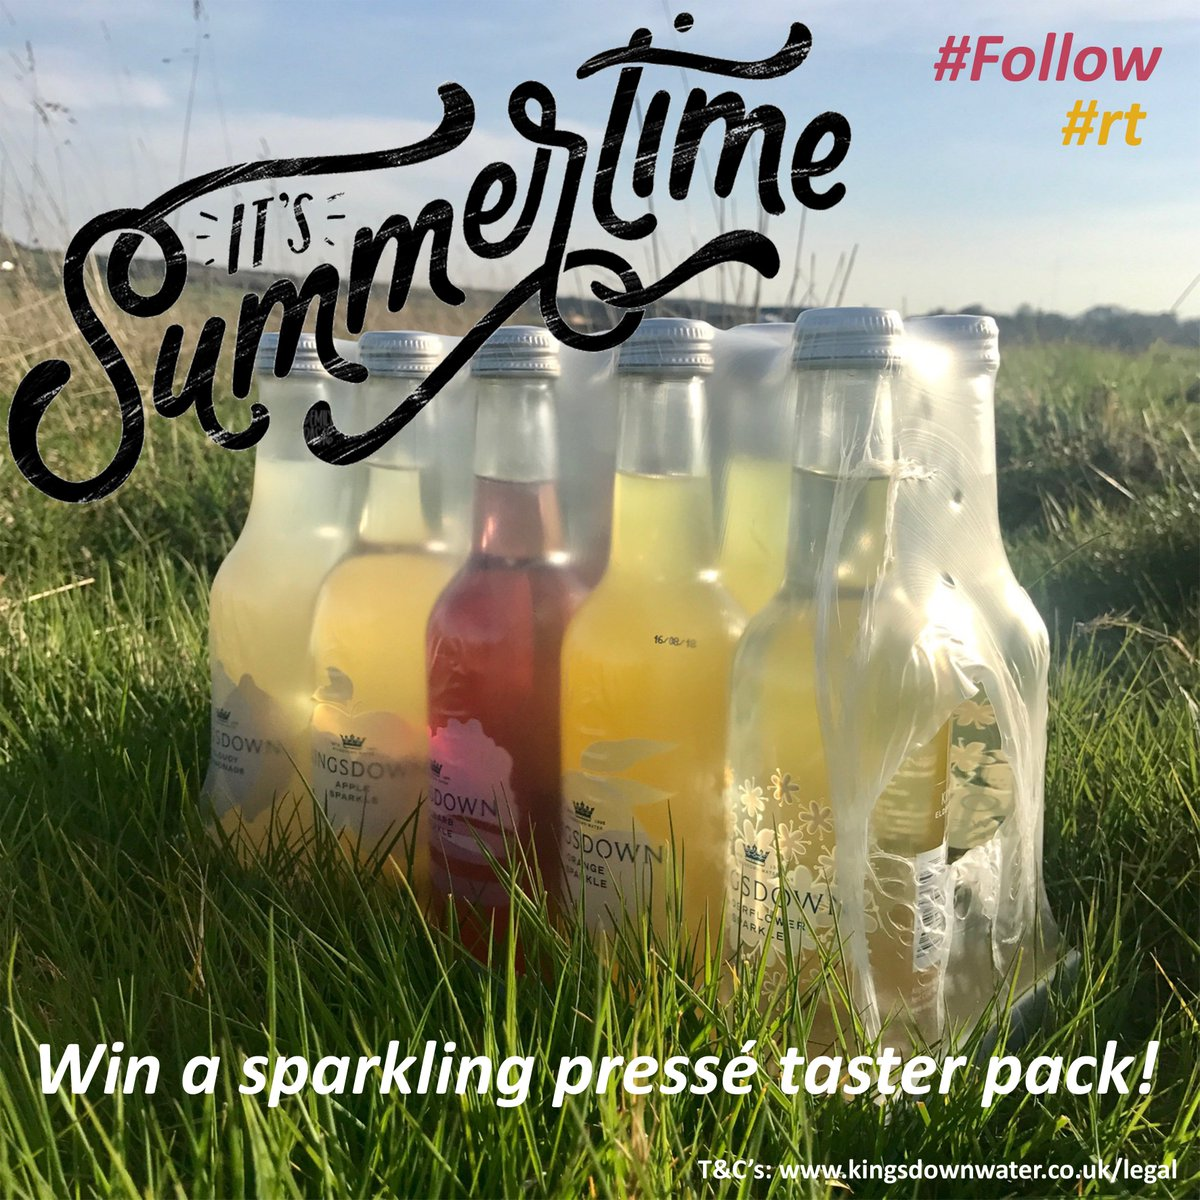 *FINAL DAY* The summer is finally nearly upon us and the sun is shining at last ☀️ We're celebrating by giving you a chance to #win a @kingsdownwater sparkling pressé taster pack! #follow & #rt for your chance to win! #Competition ends 6PM 31/05/19 #summertime #GIVEAWAY #Friyay